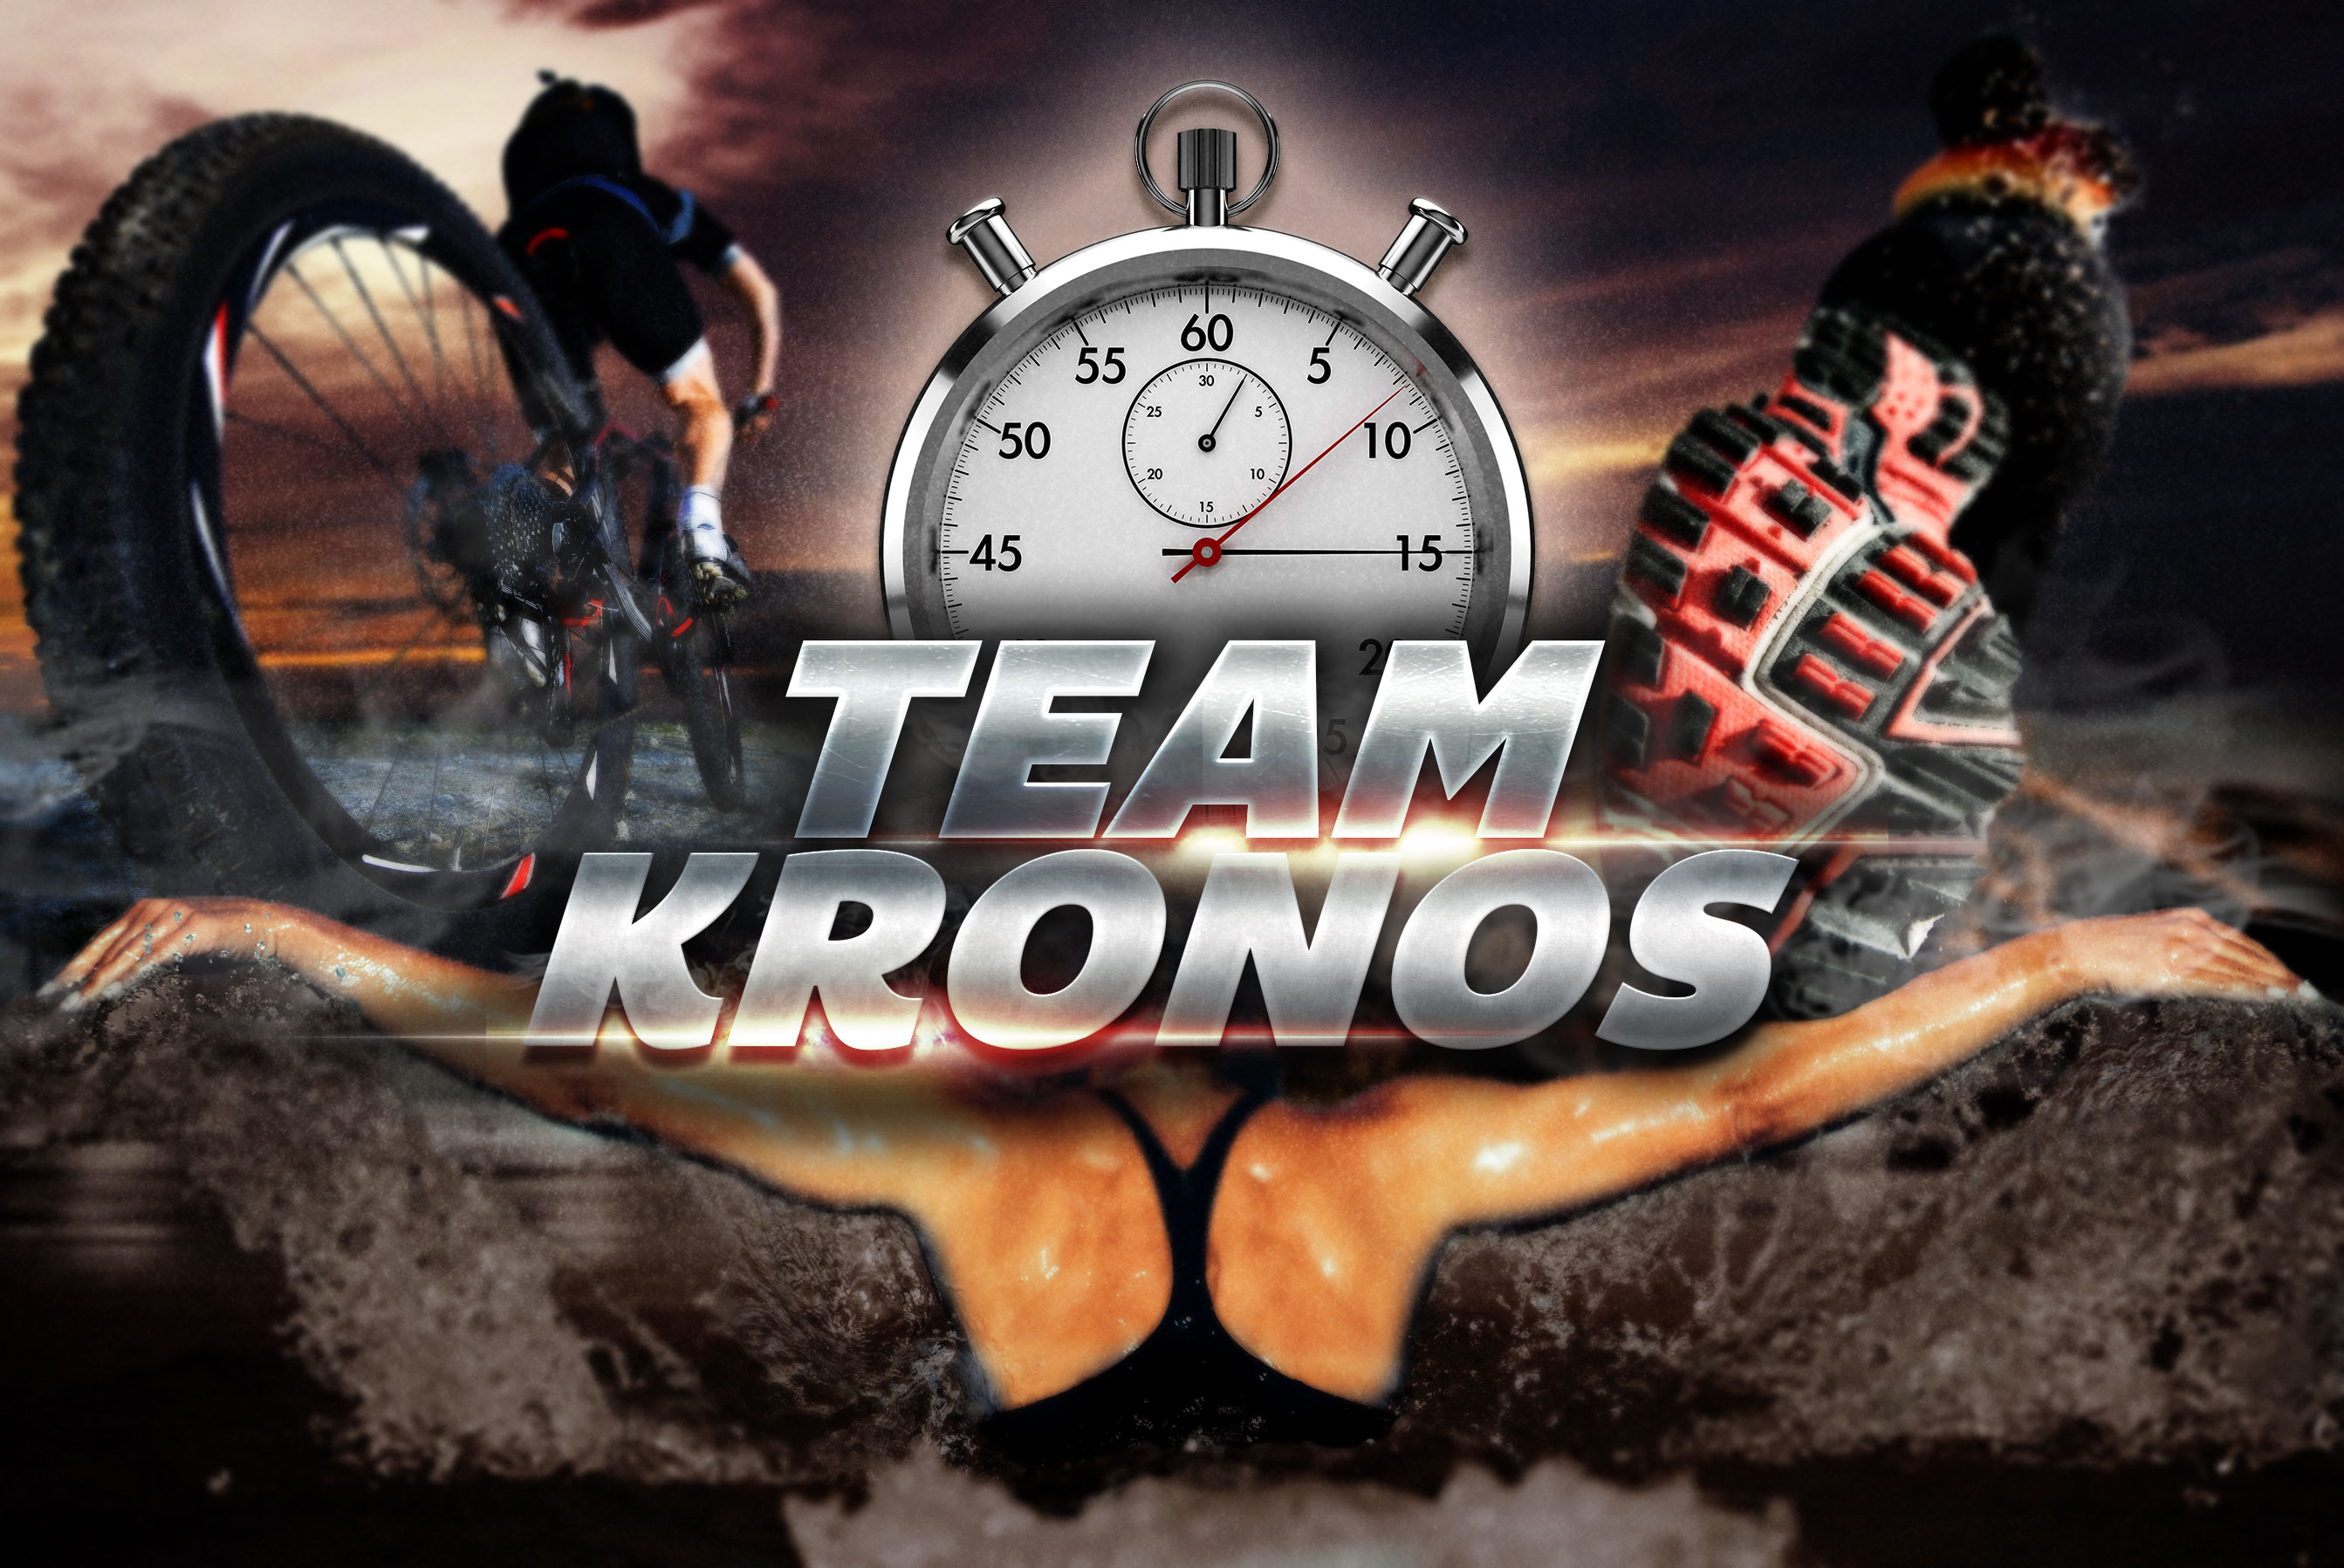 https://teamkronos.com/wp-content/uploads/2015/12/bg-teamkronos.jpg